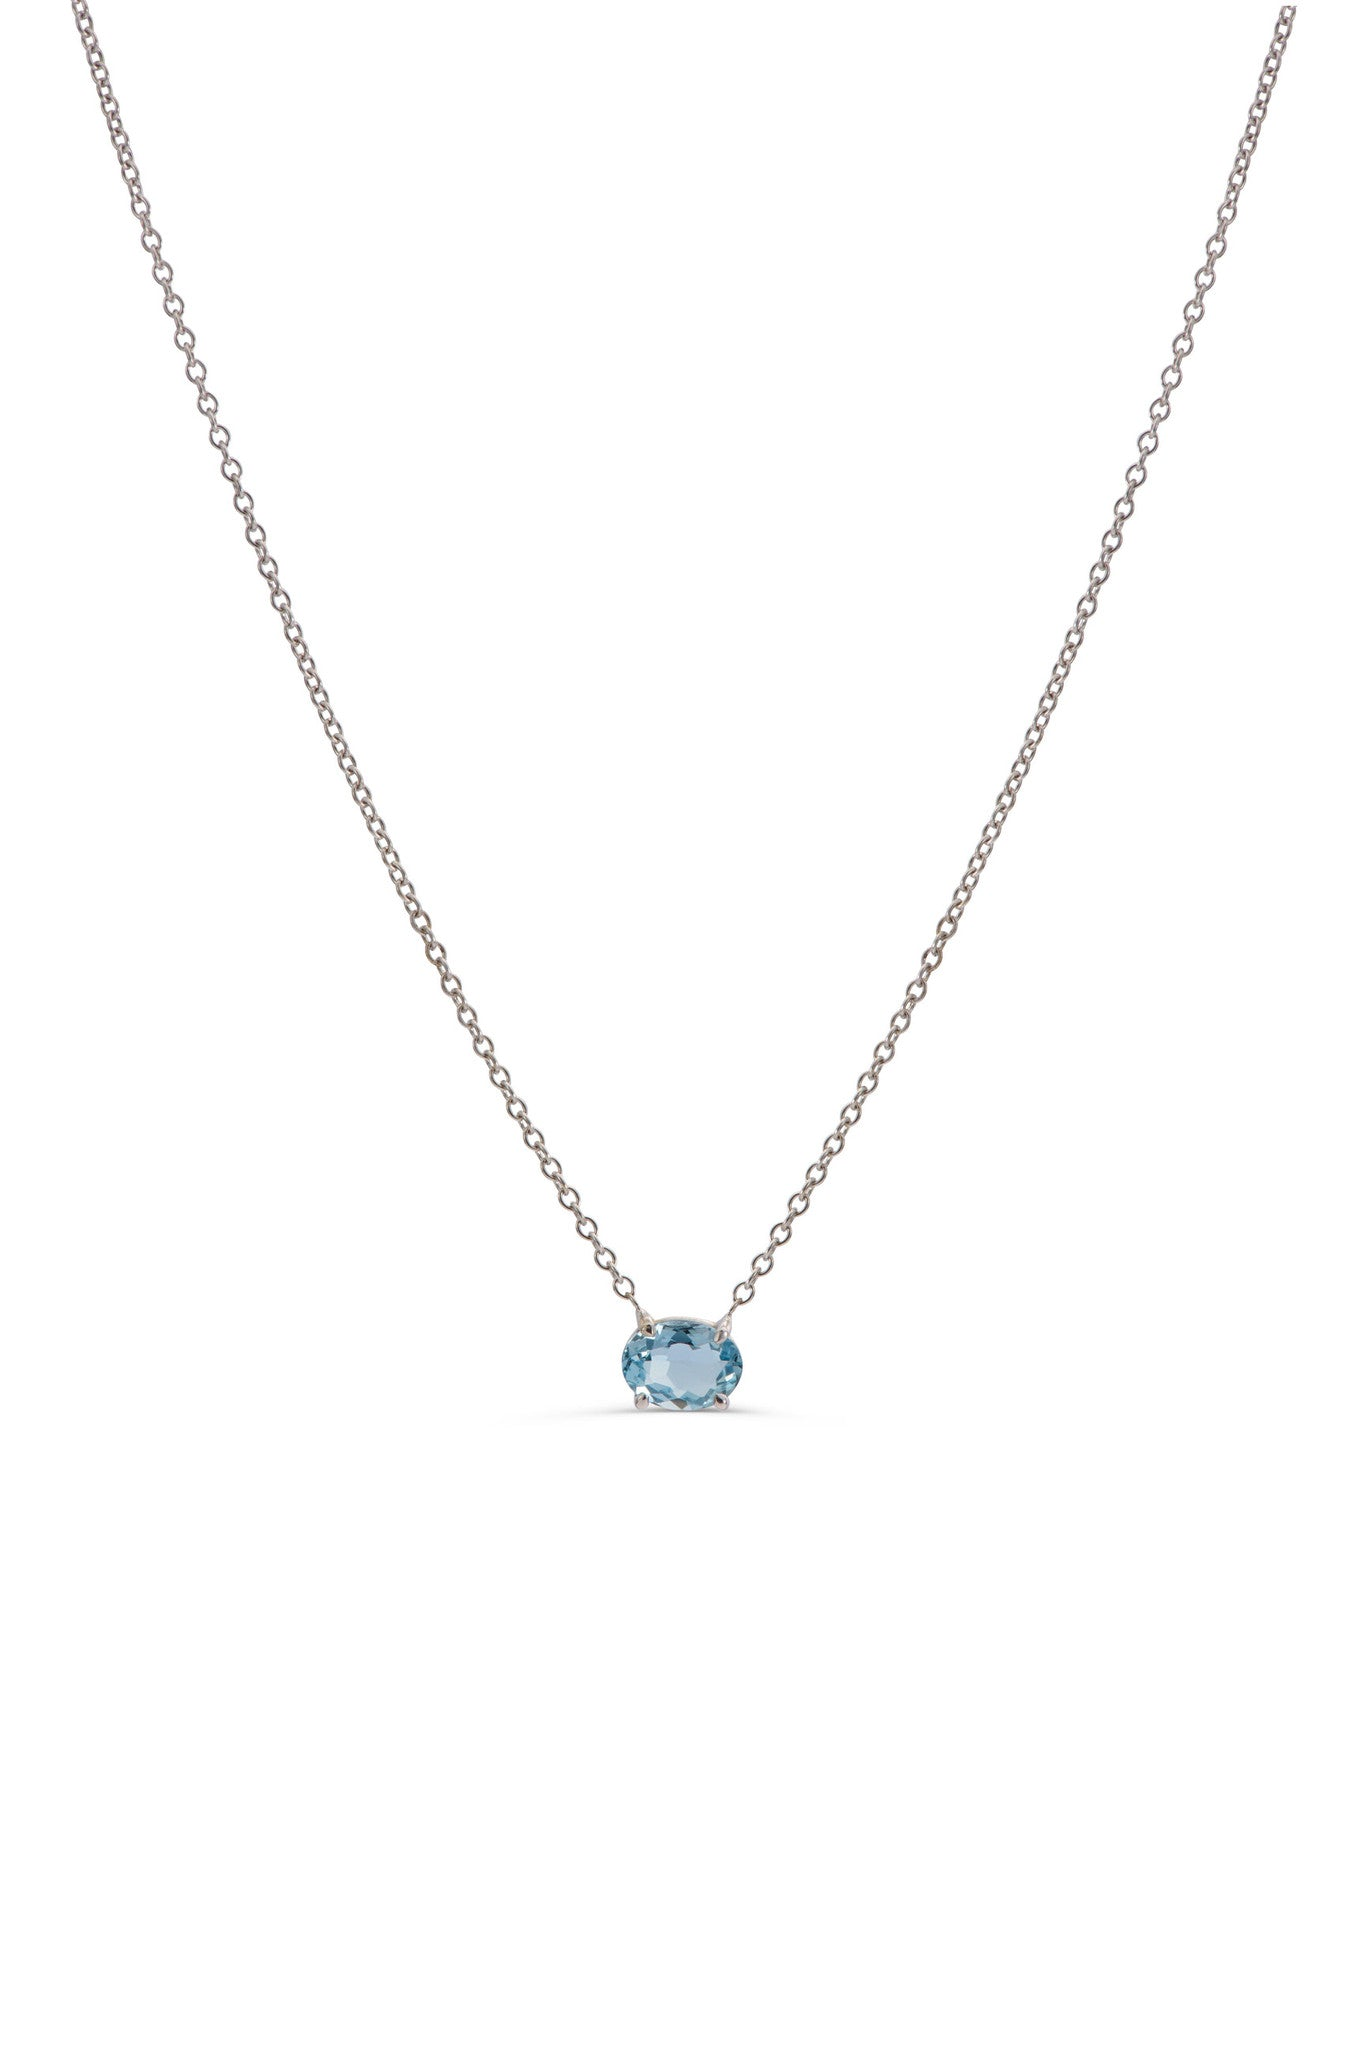 cropped front aquamarine blue image from boutique products marine pendant necklace aqua manhattan borough l silver